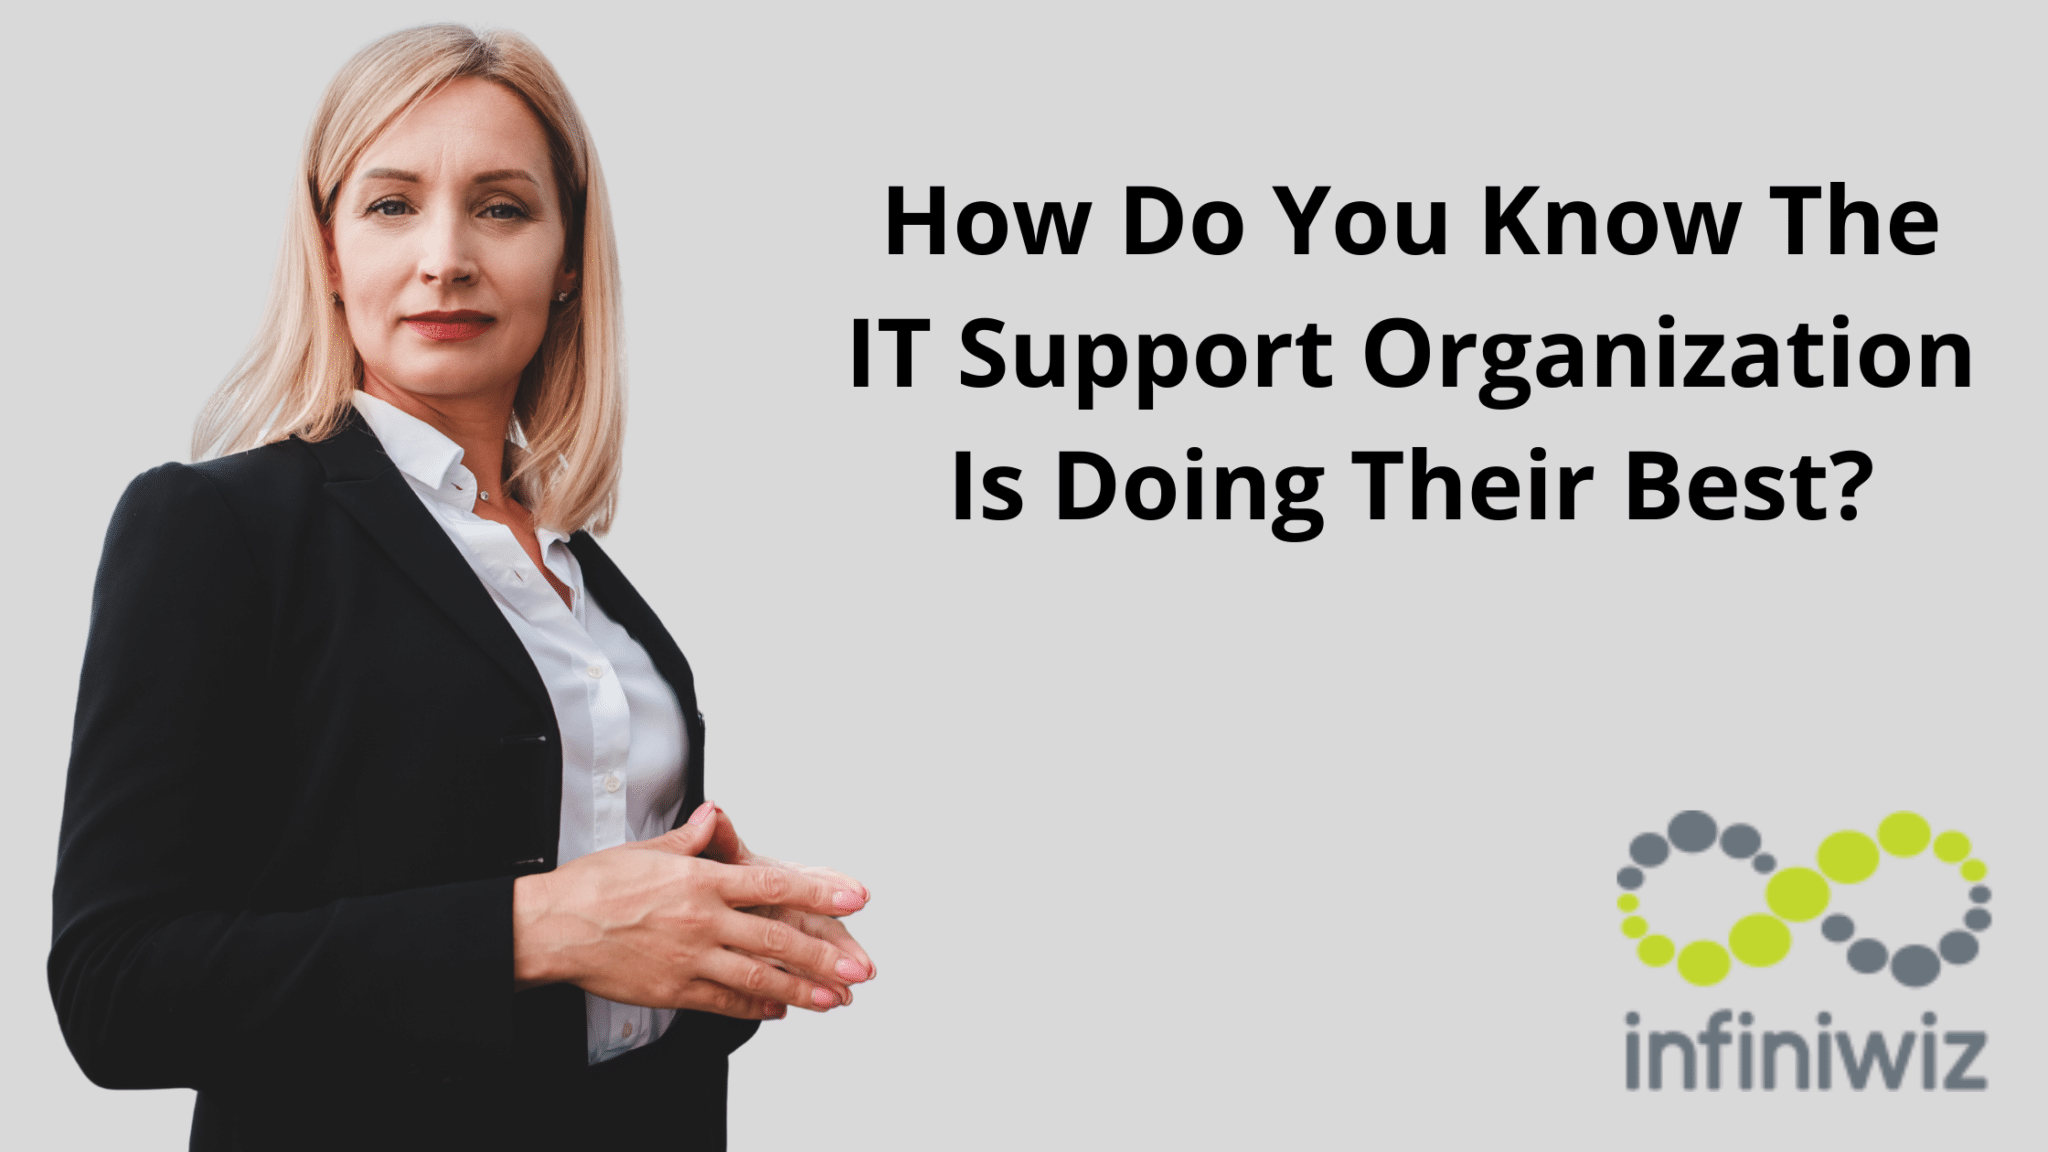 How Do You Know The IT Support Organization Is Doing Their Best?